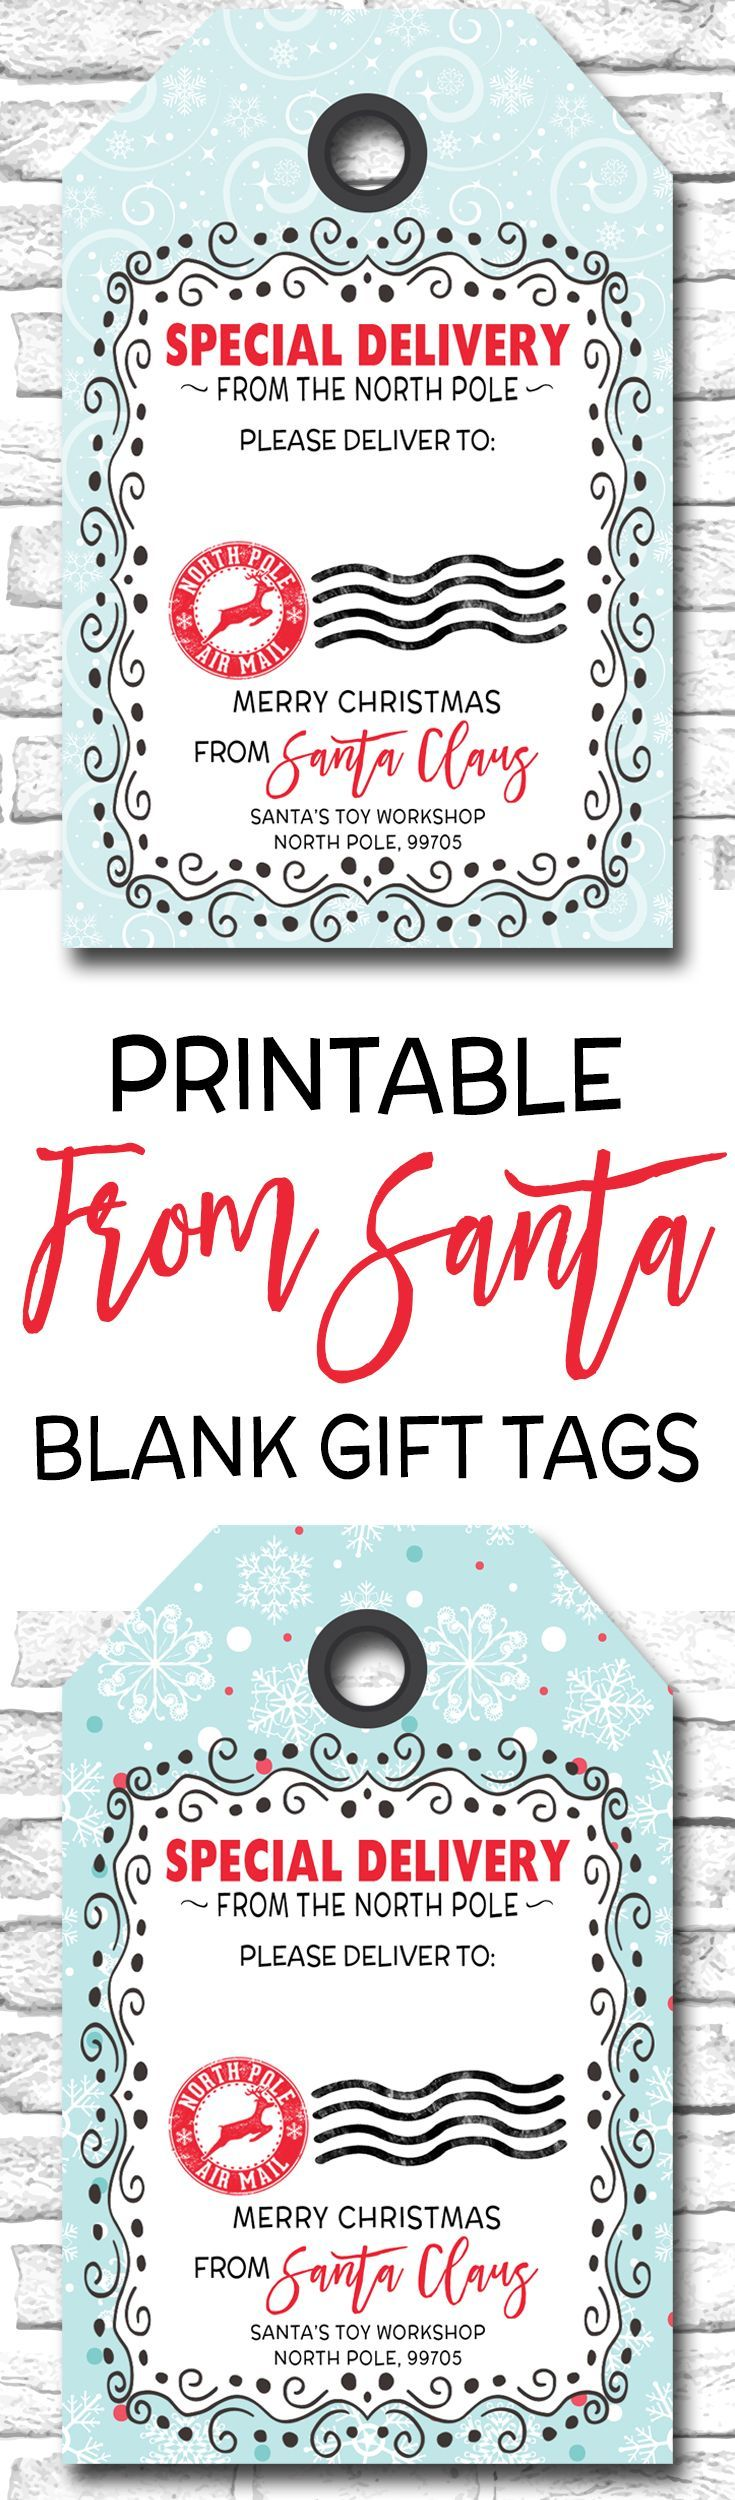 Printable Holiday Gift Tags, EDITABLE From Santa Gift Tags, Christmas Gift Tags, Santa Gift Tags, Santa Tags, Xmas Tags, INSTANT DOWNLOAD